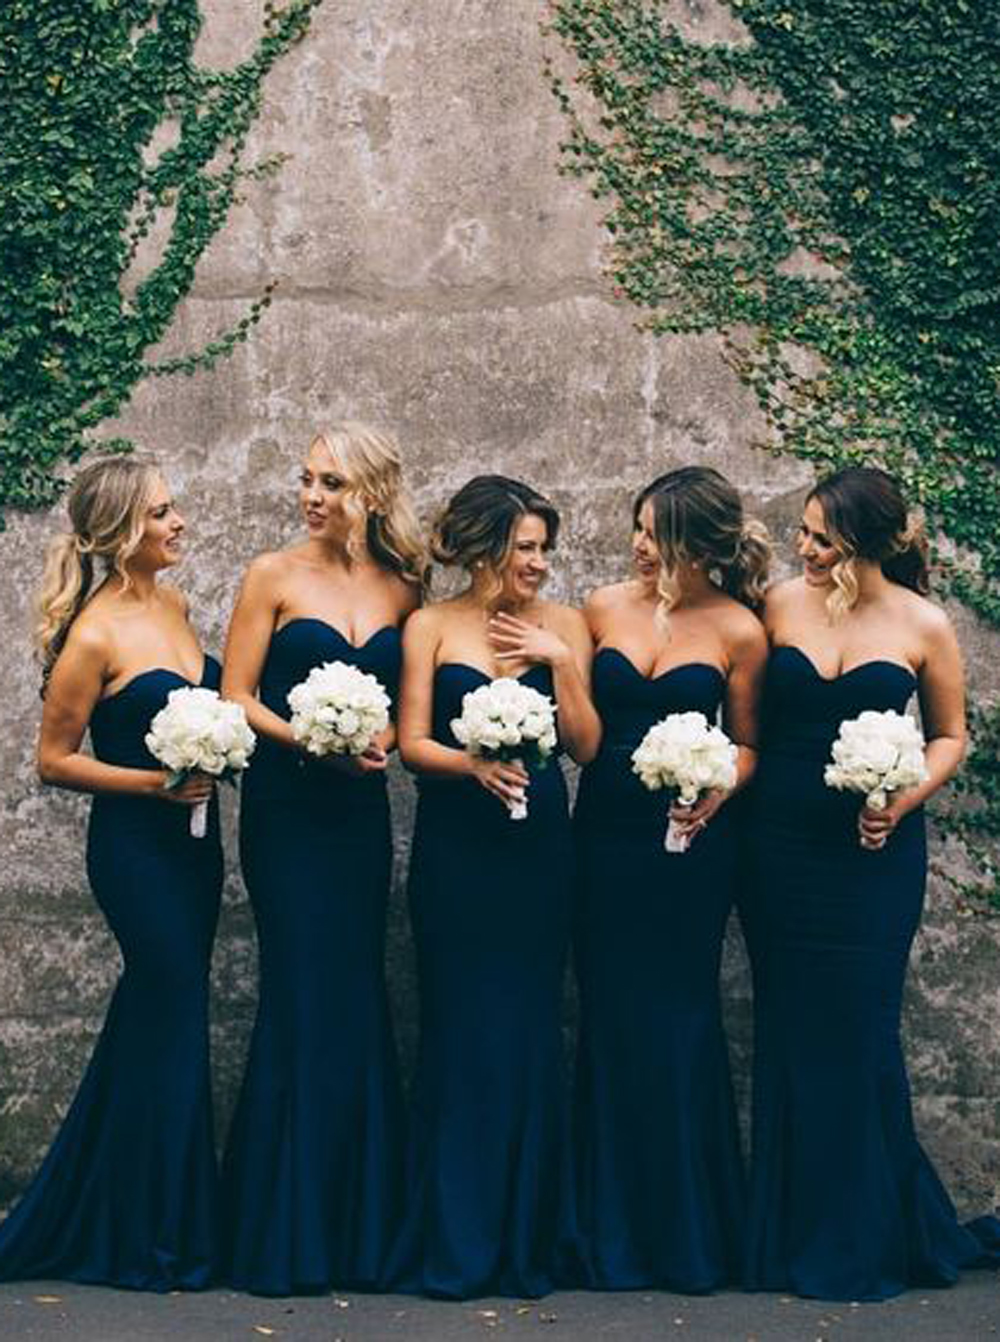 Gorgeous mermaid long navy blue strapless bridesmaid dress gorgeous mermaid long navy blue strapless bridesmaid dress ombrellifo Images